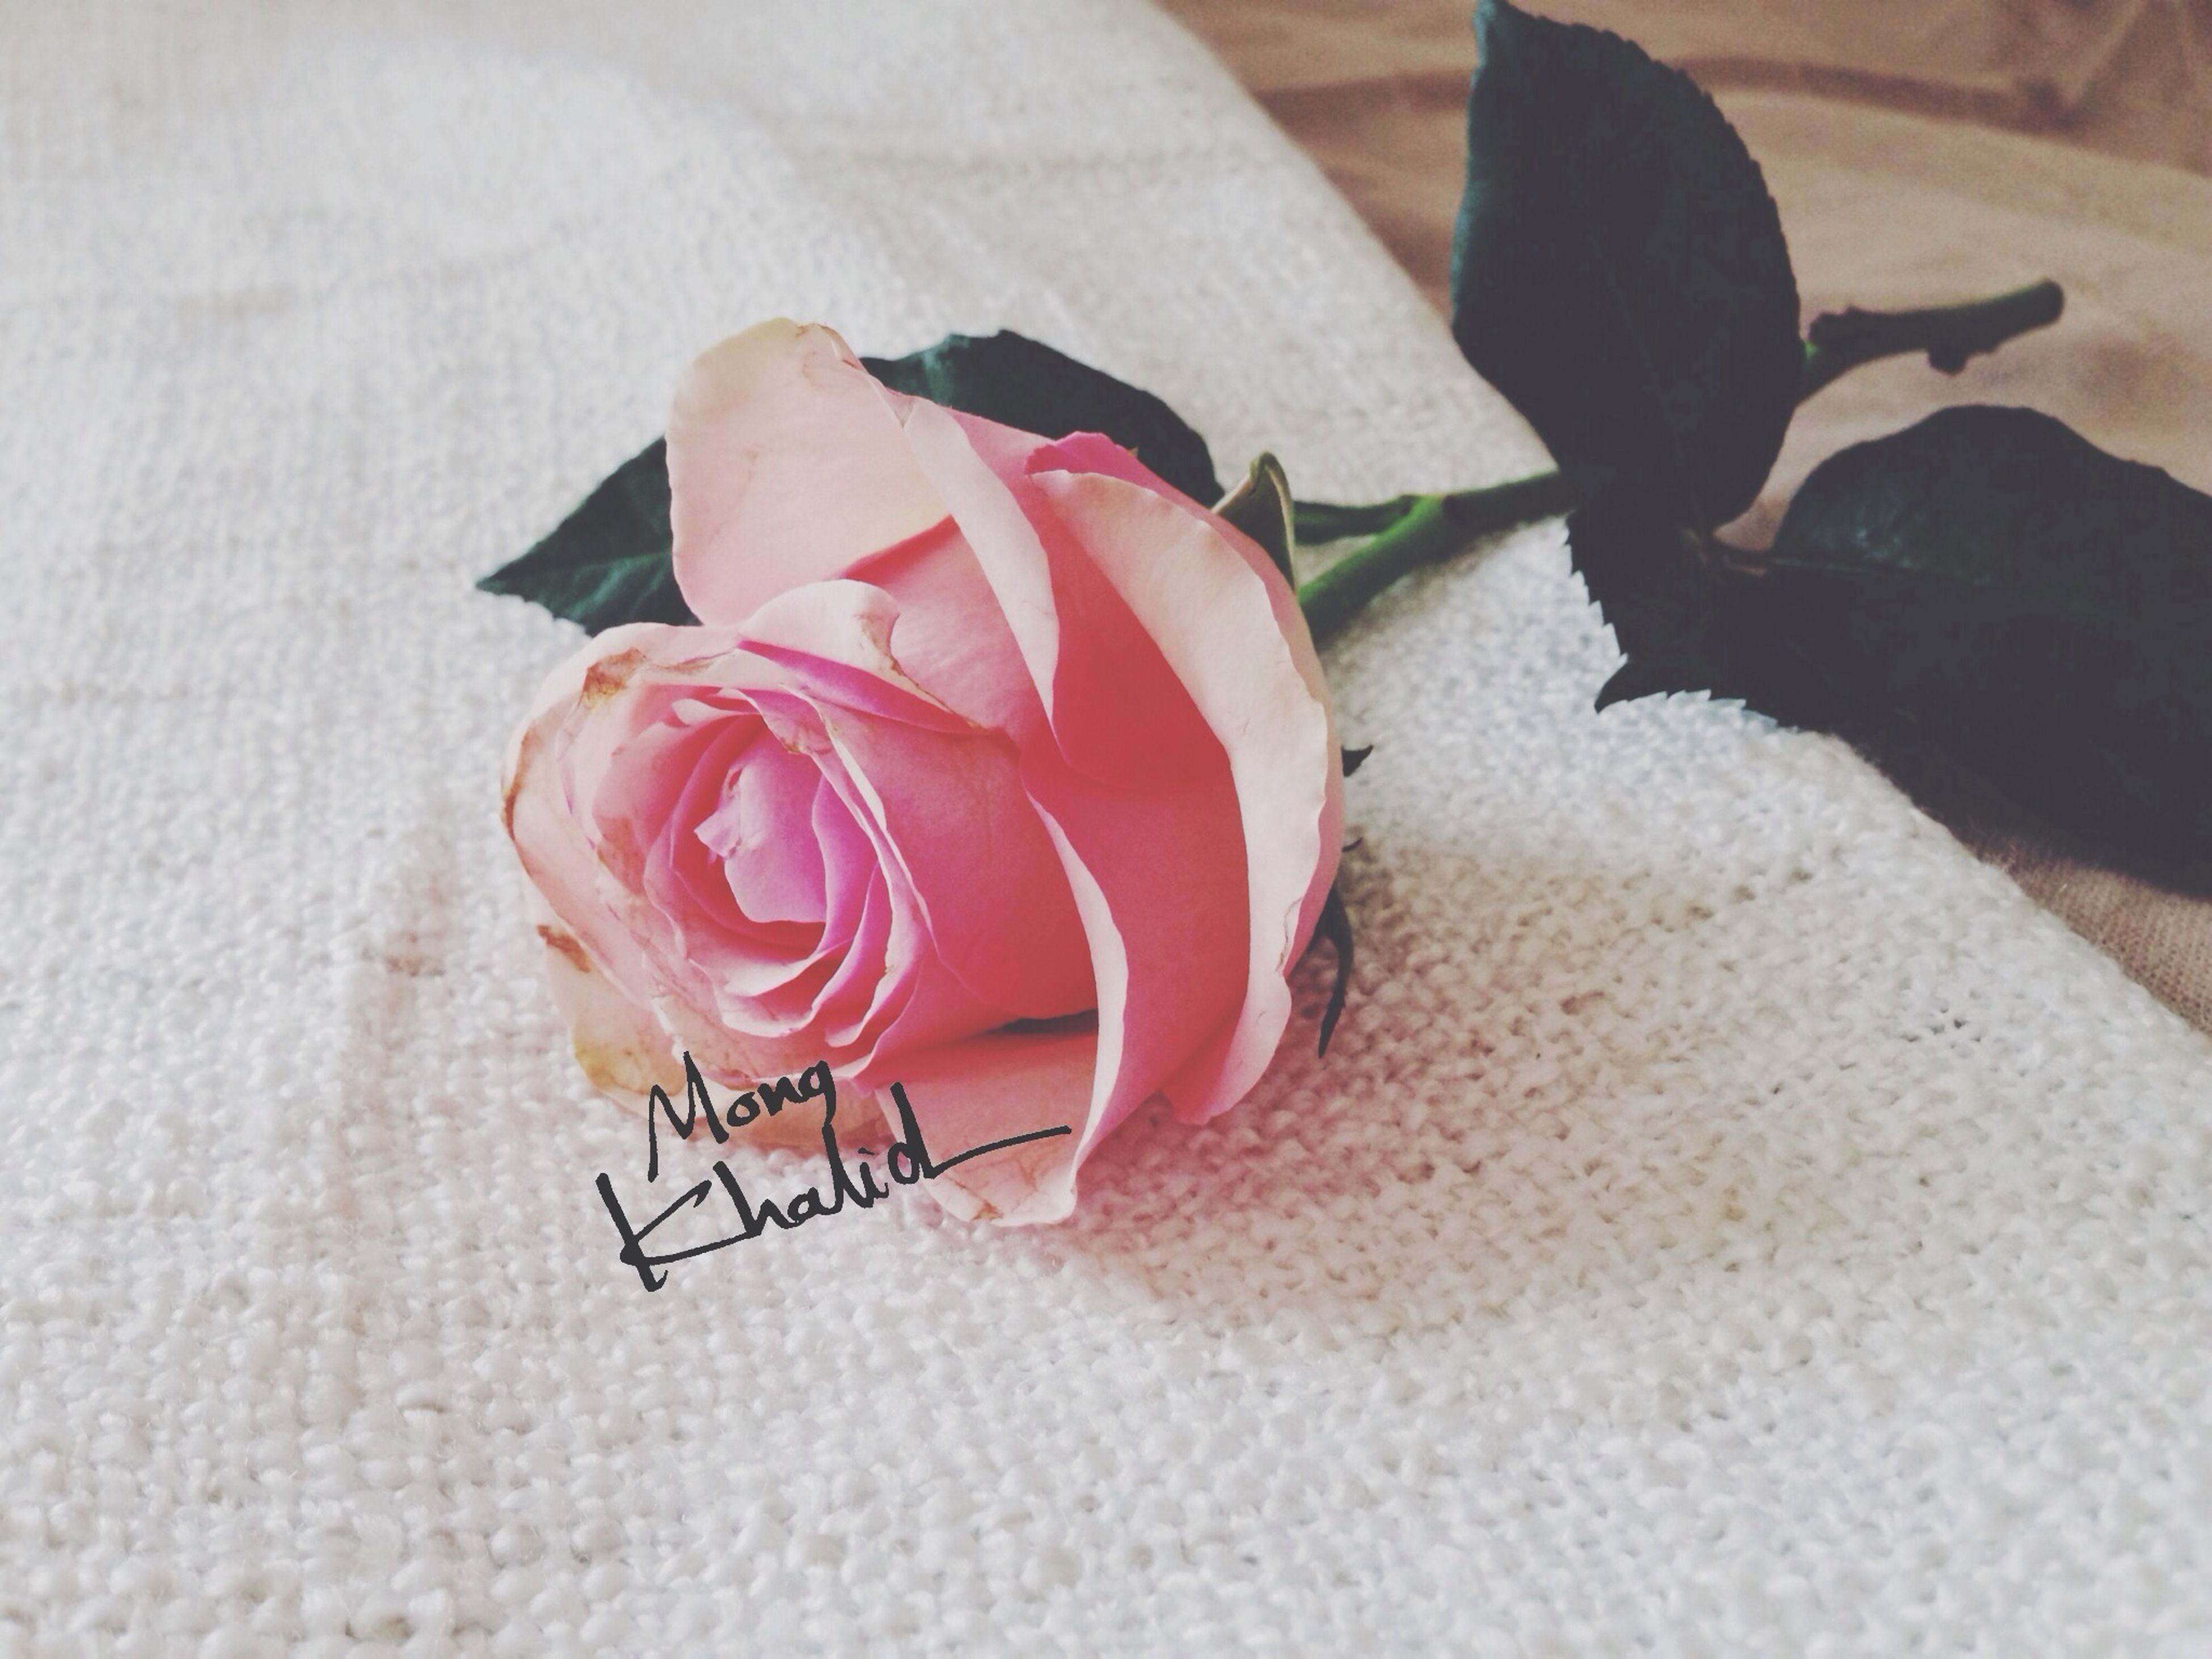 indoors, flower, table, still life, red, rose - flower, close-up, petal, high angle view, fragility, pink color, wall - building feature, freshness, no people, single object, shadow, day, sunlight, vase, rose